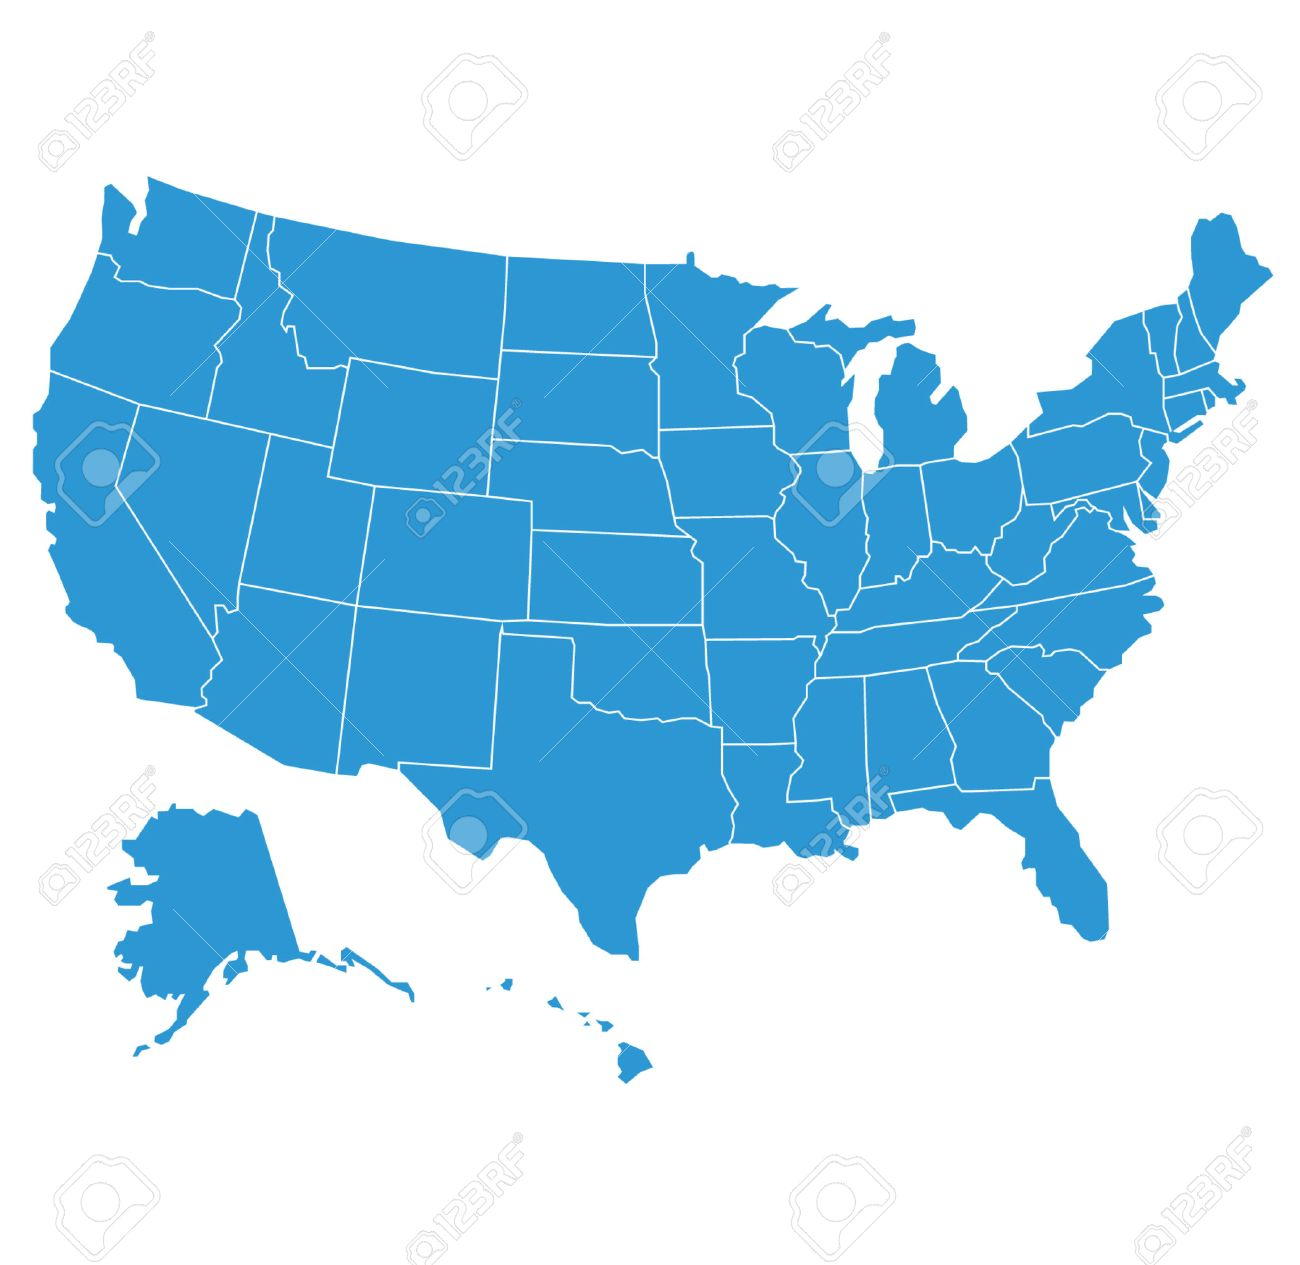 United States Of America Map Illustration Royalty Free Cliparts - Maine on map of usa